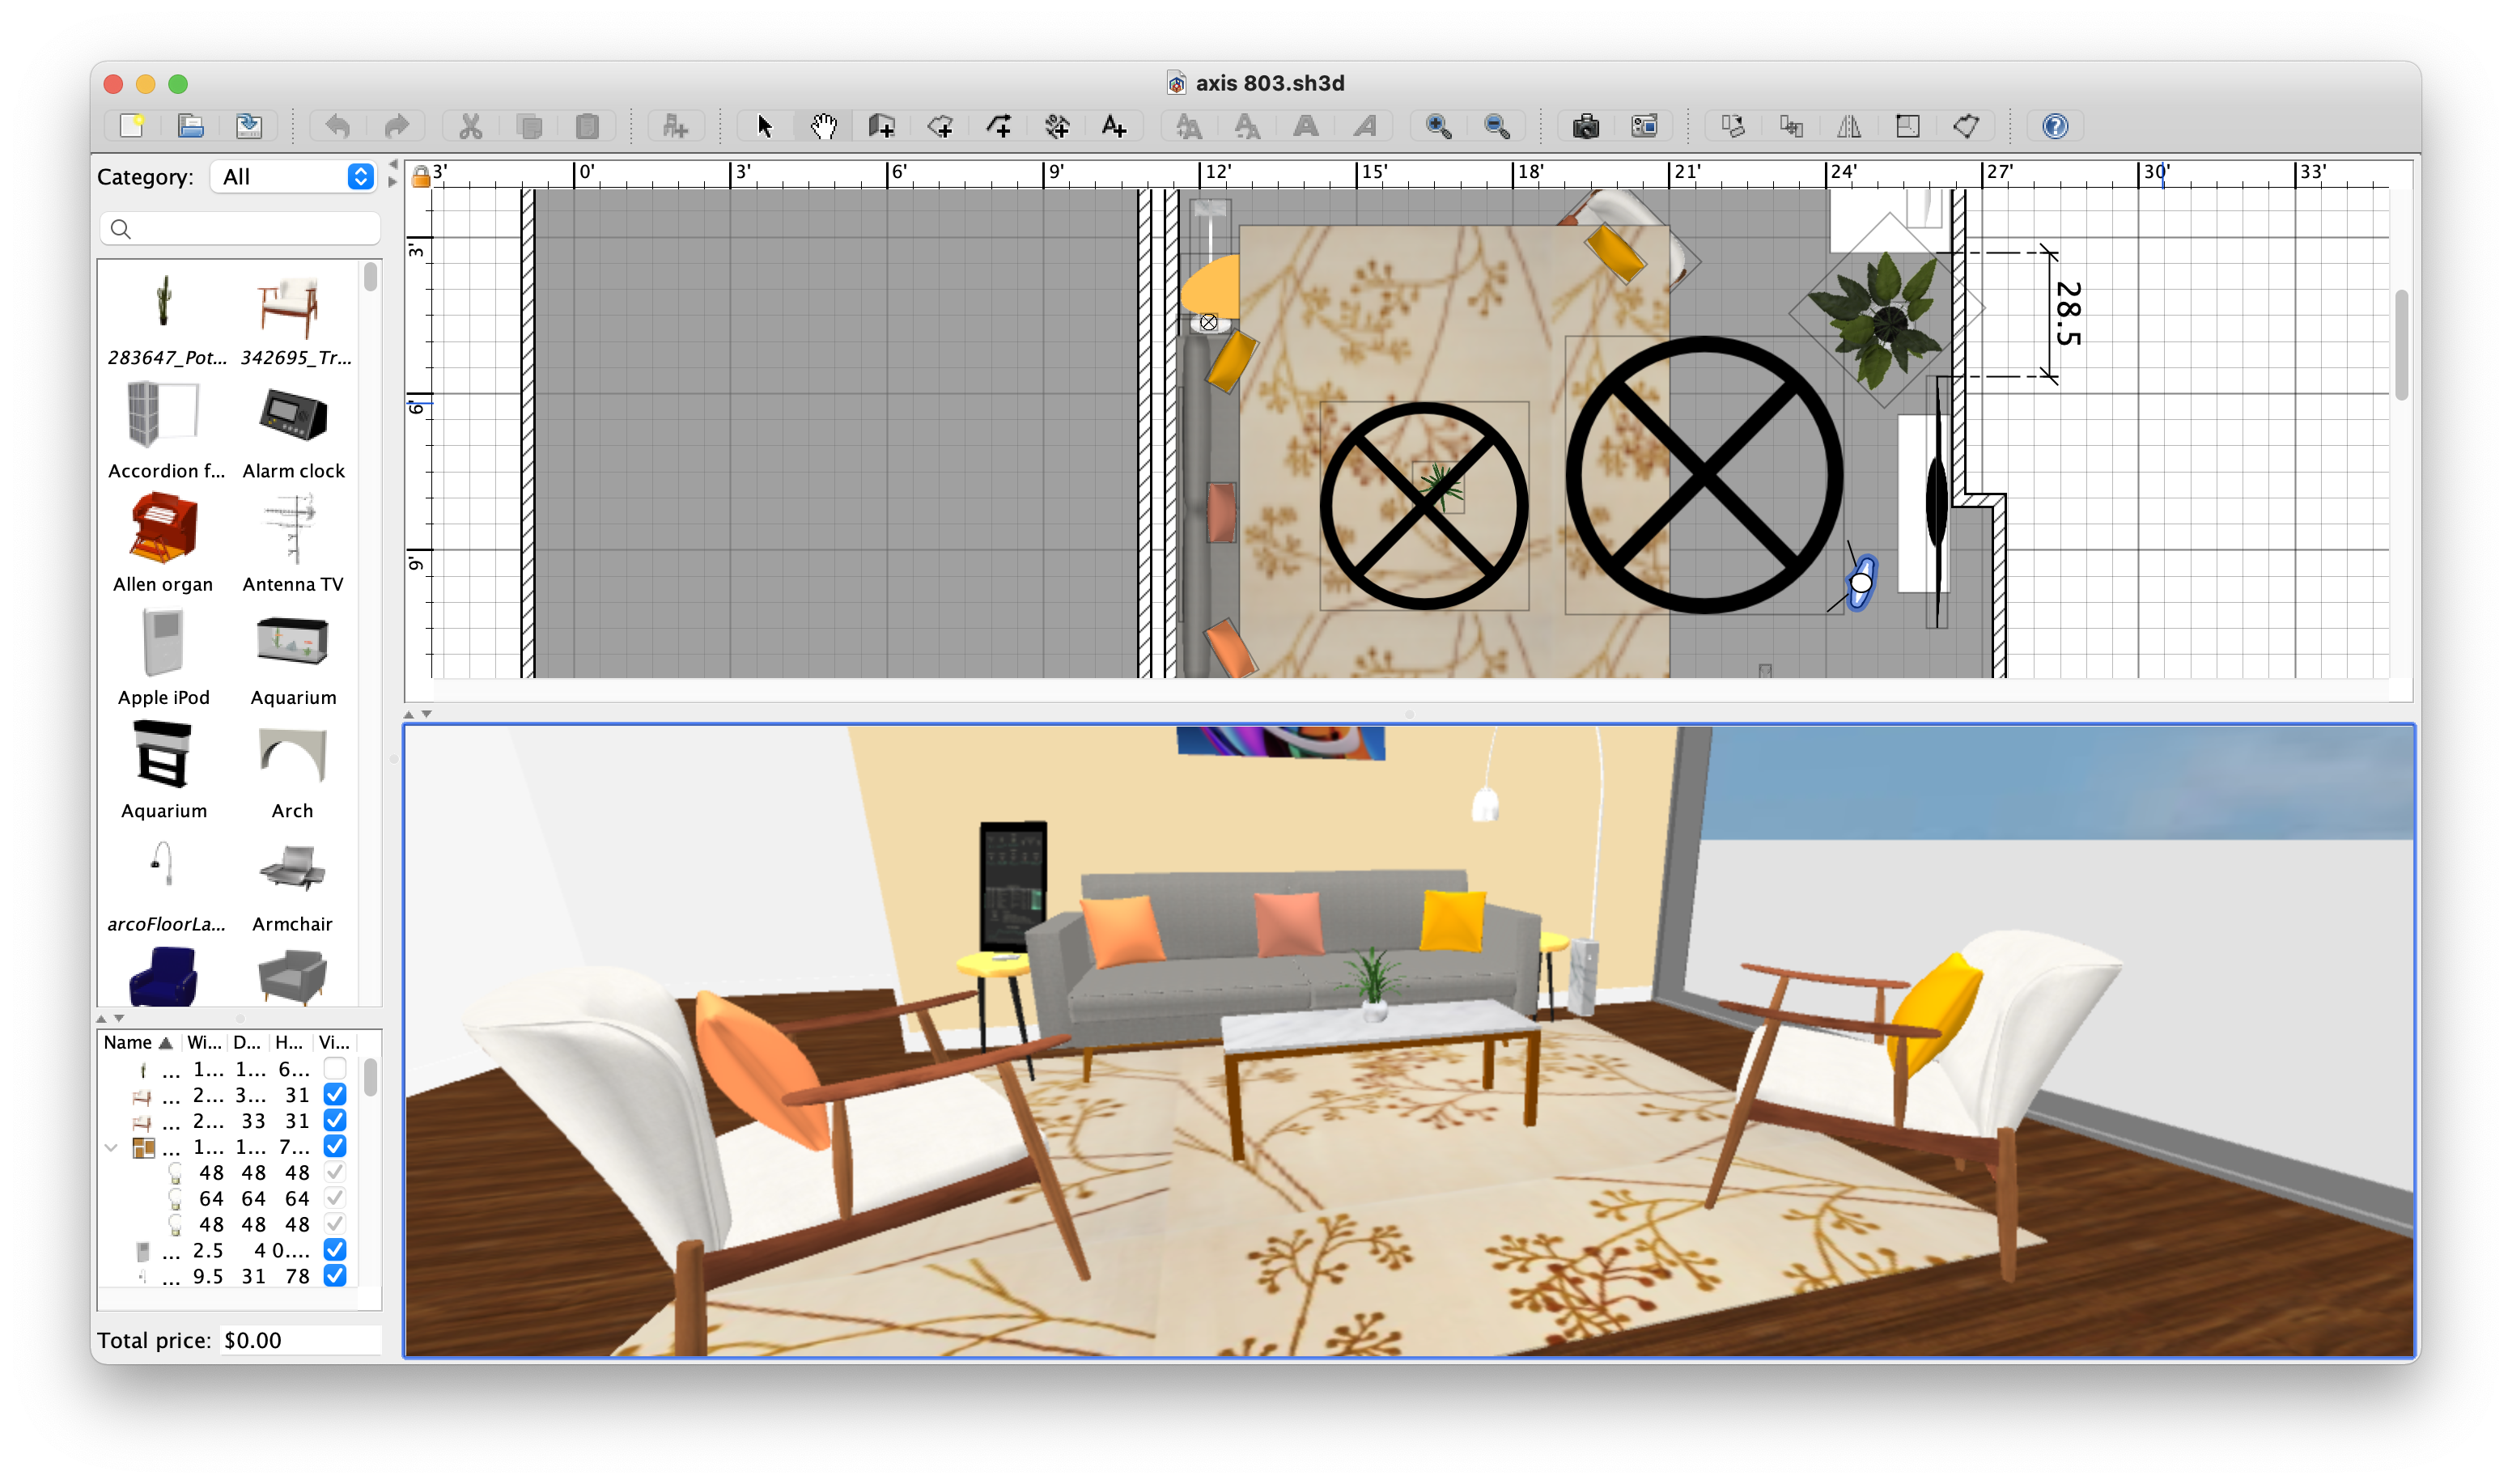 Sweet Home 3D example layout